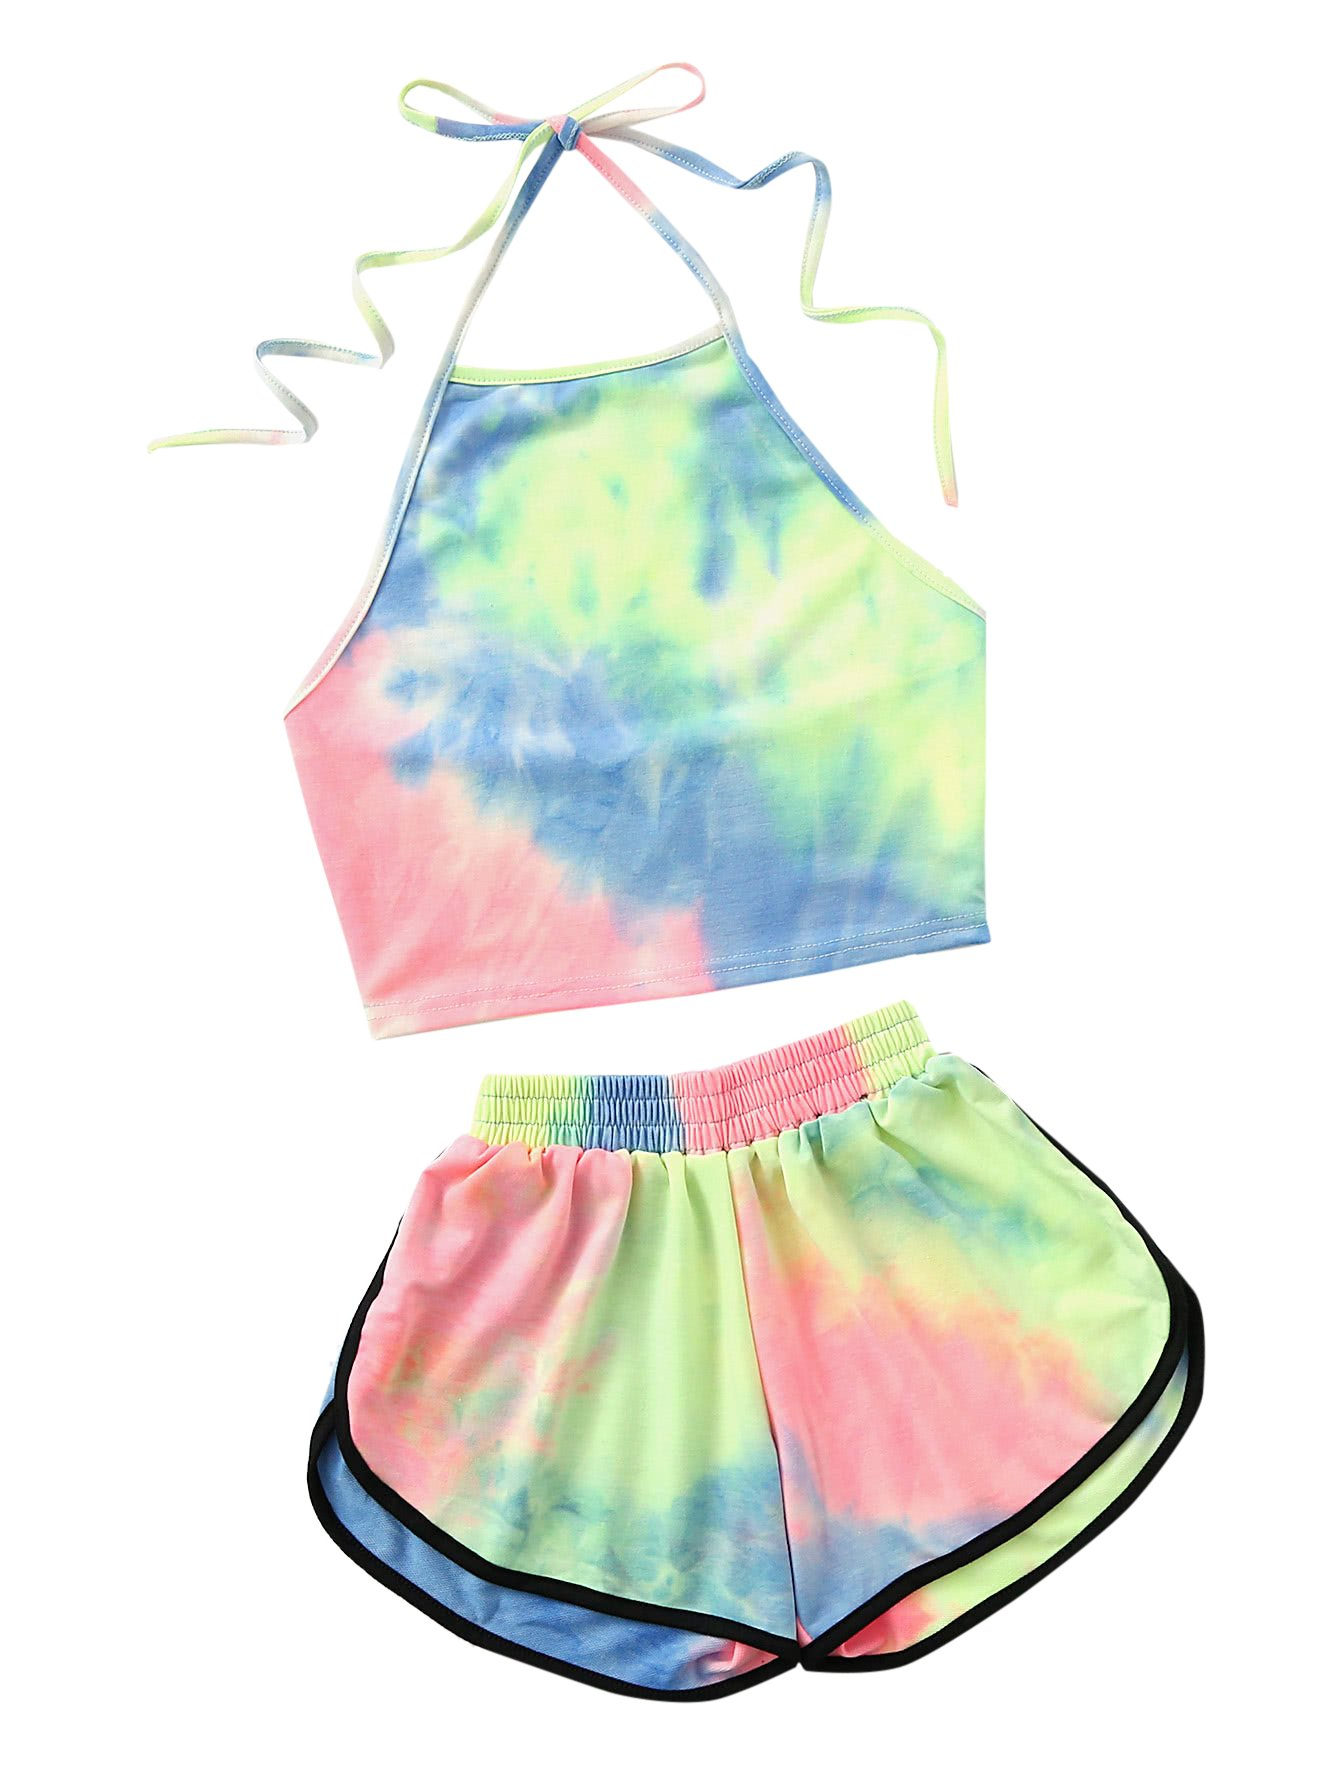 SweatyRocks Women's 2 Piece Set Halter Crop Top and Shorts Set Tie Dye S